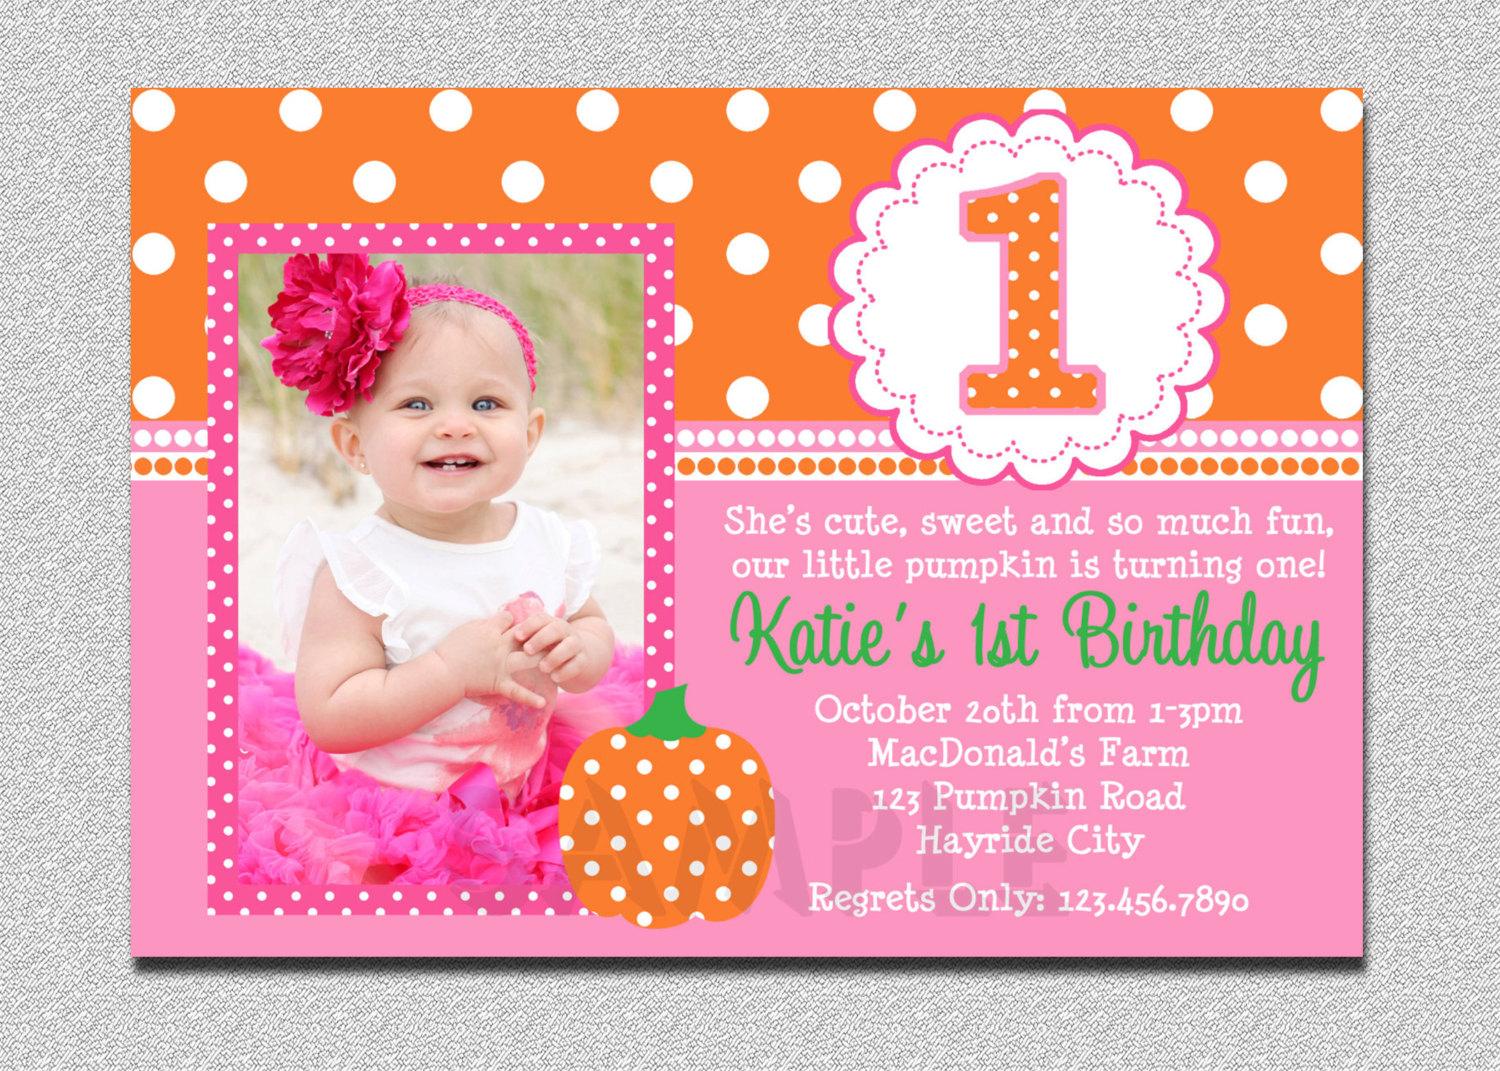 1st birthday photo invitations girl ; 1st-birthday-invitations-girl-free-1